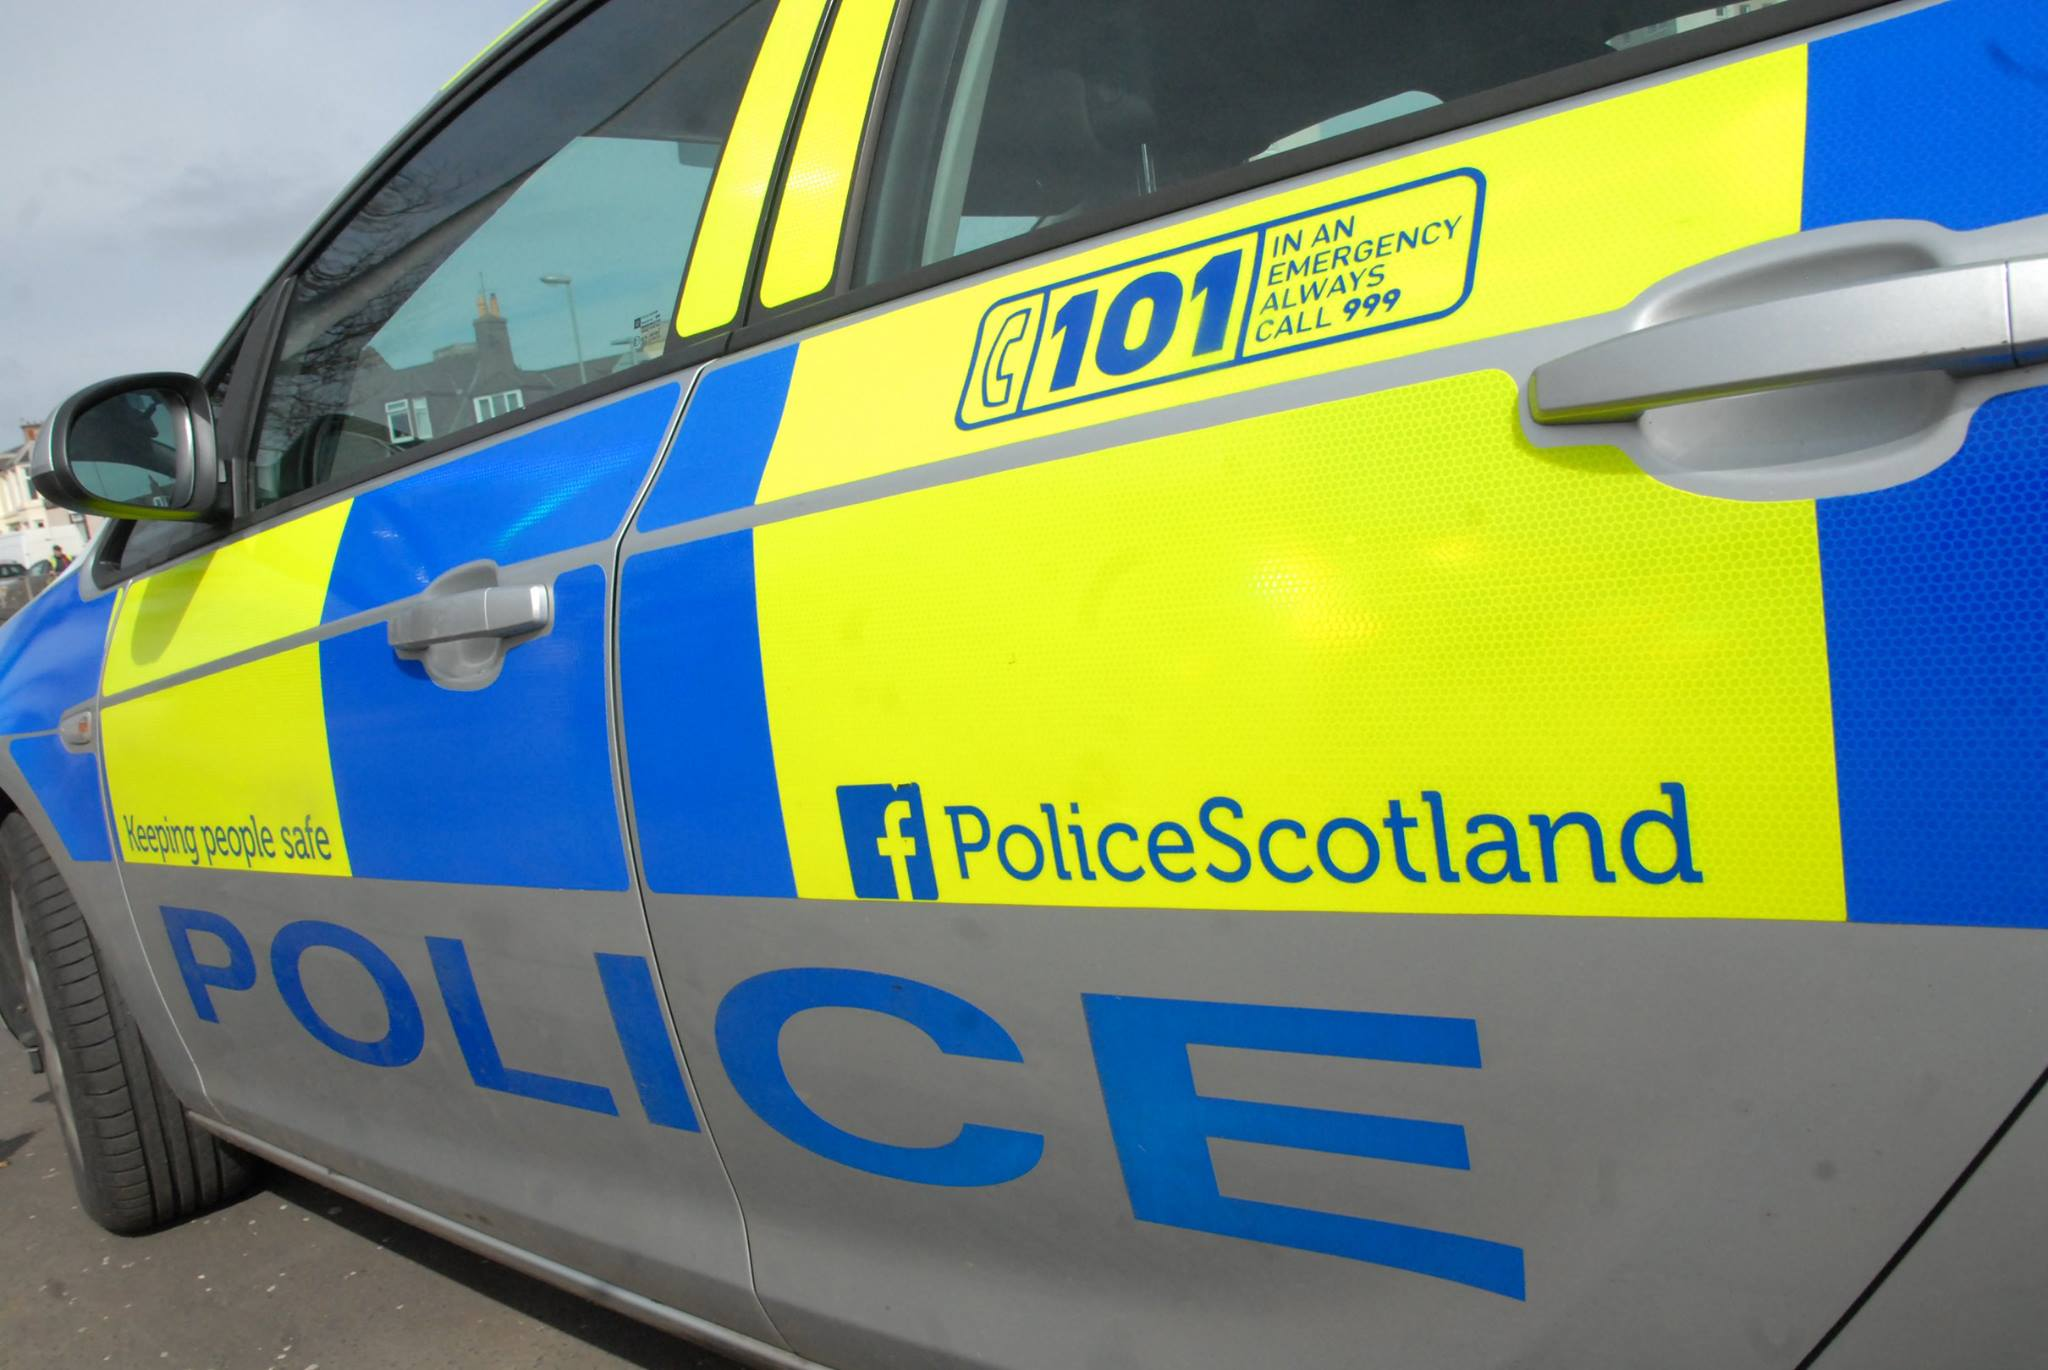 Youngster taken to hospital after being hit by car